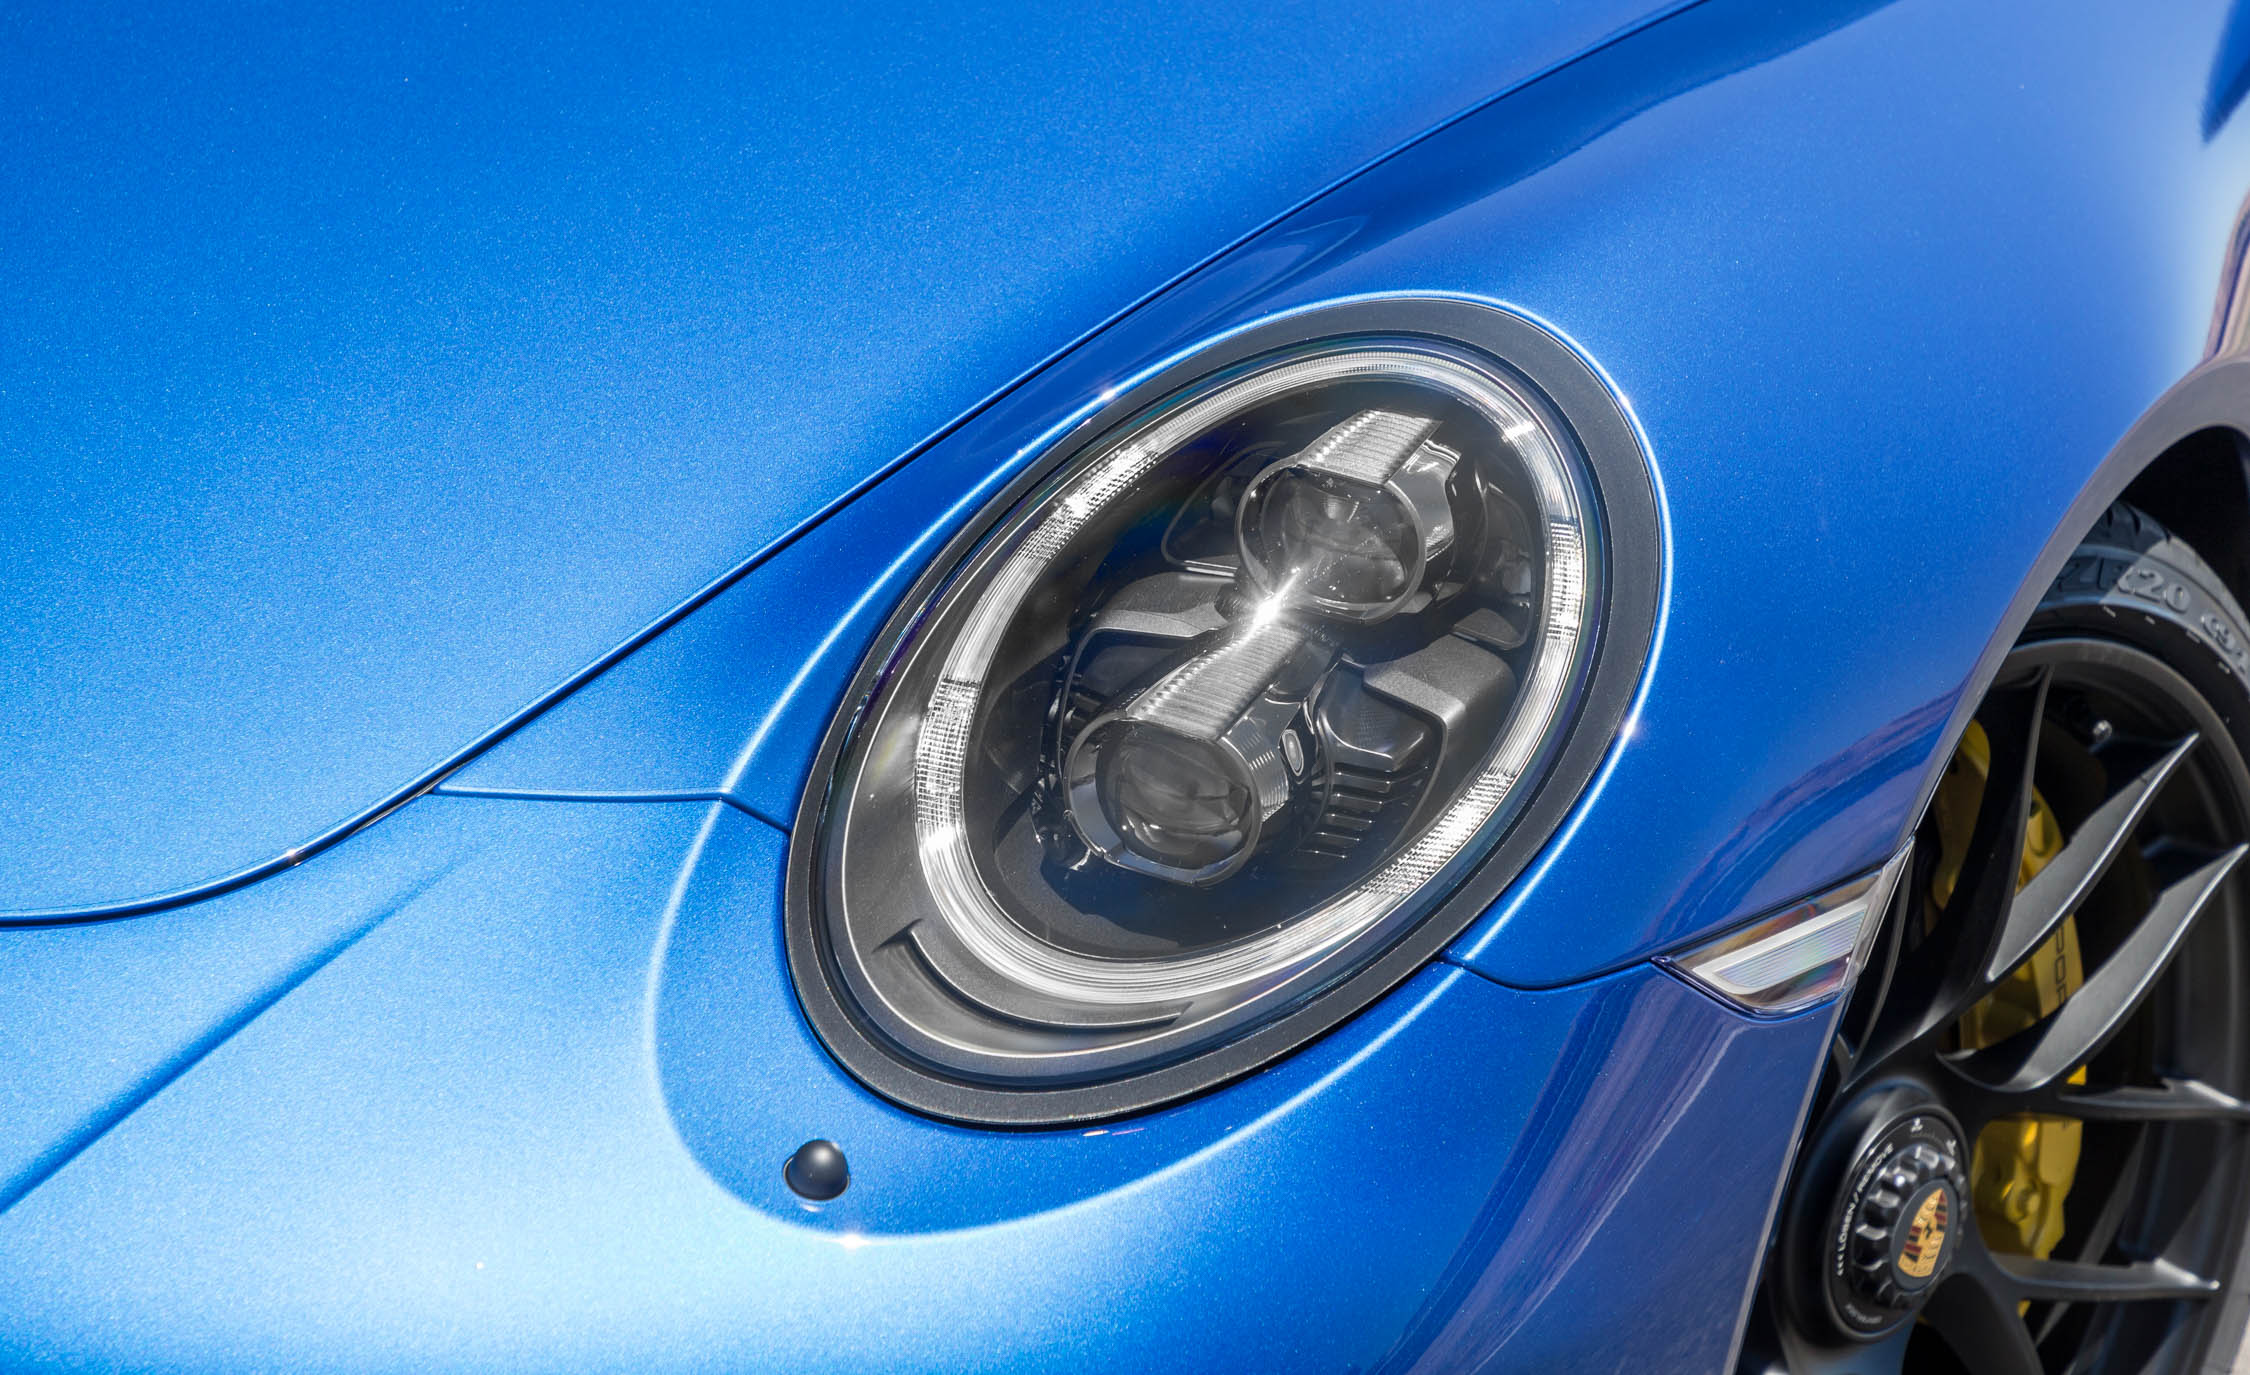 2017 Porsche 911 Carrera 4 GTS Coupe Exterior View Headlight (Photo 21 of 97)